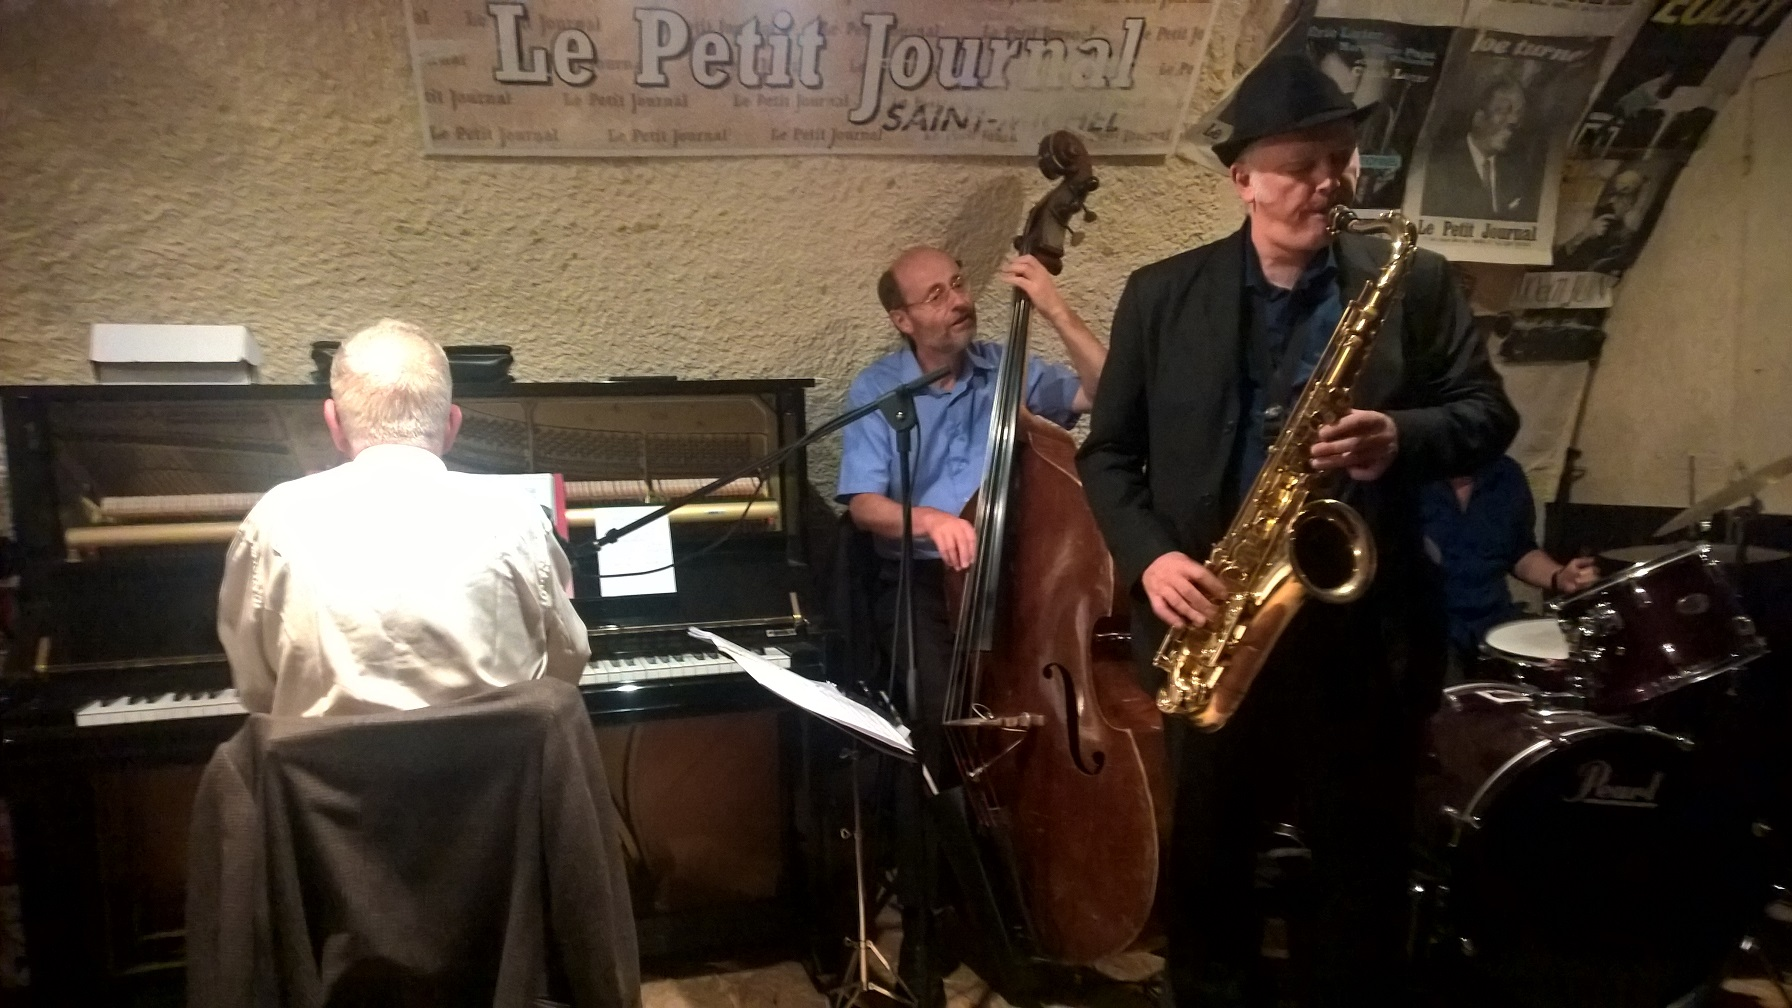 Le Petit Journal - Jazz in Paris...